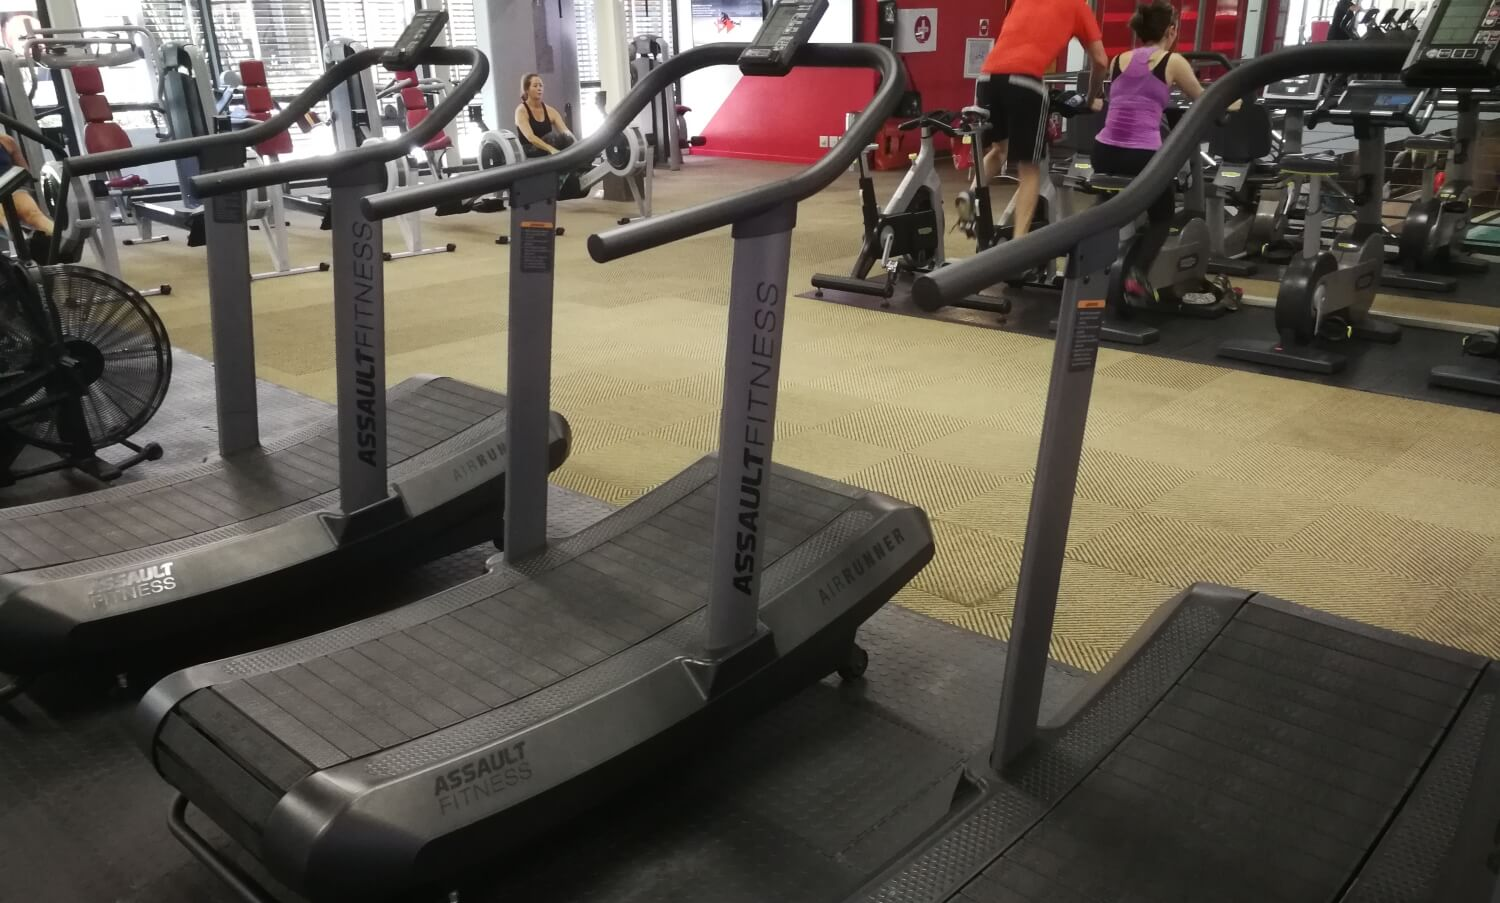 Assault AirRunner Treadmill: In-depth Review